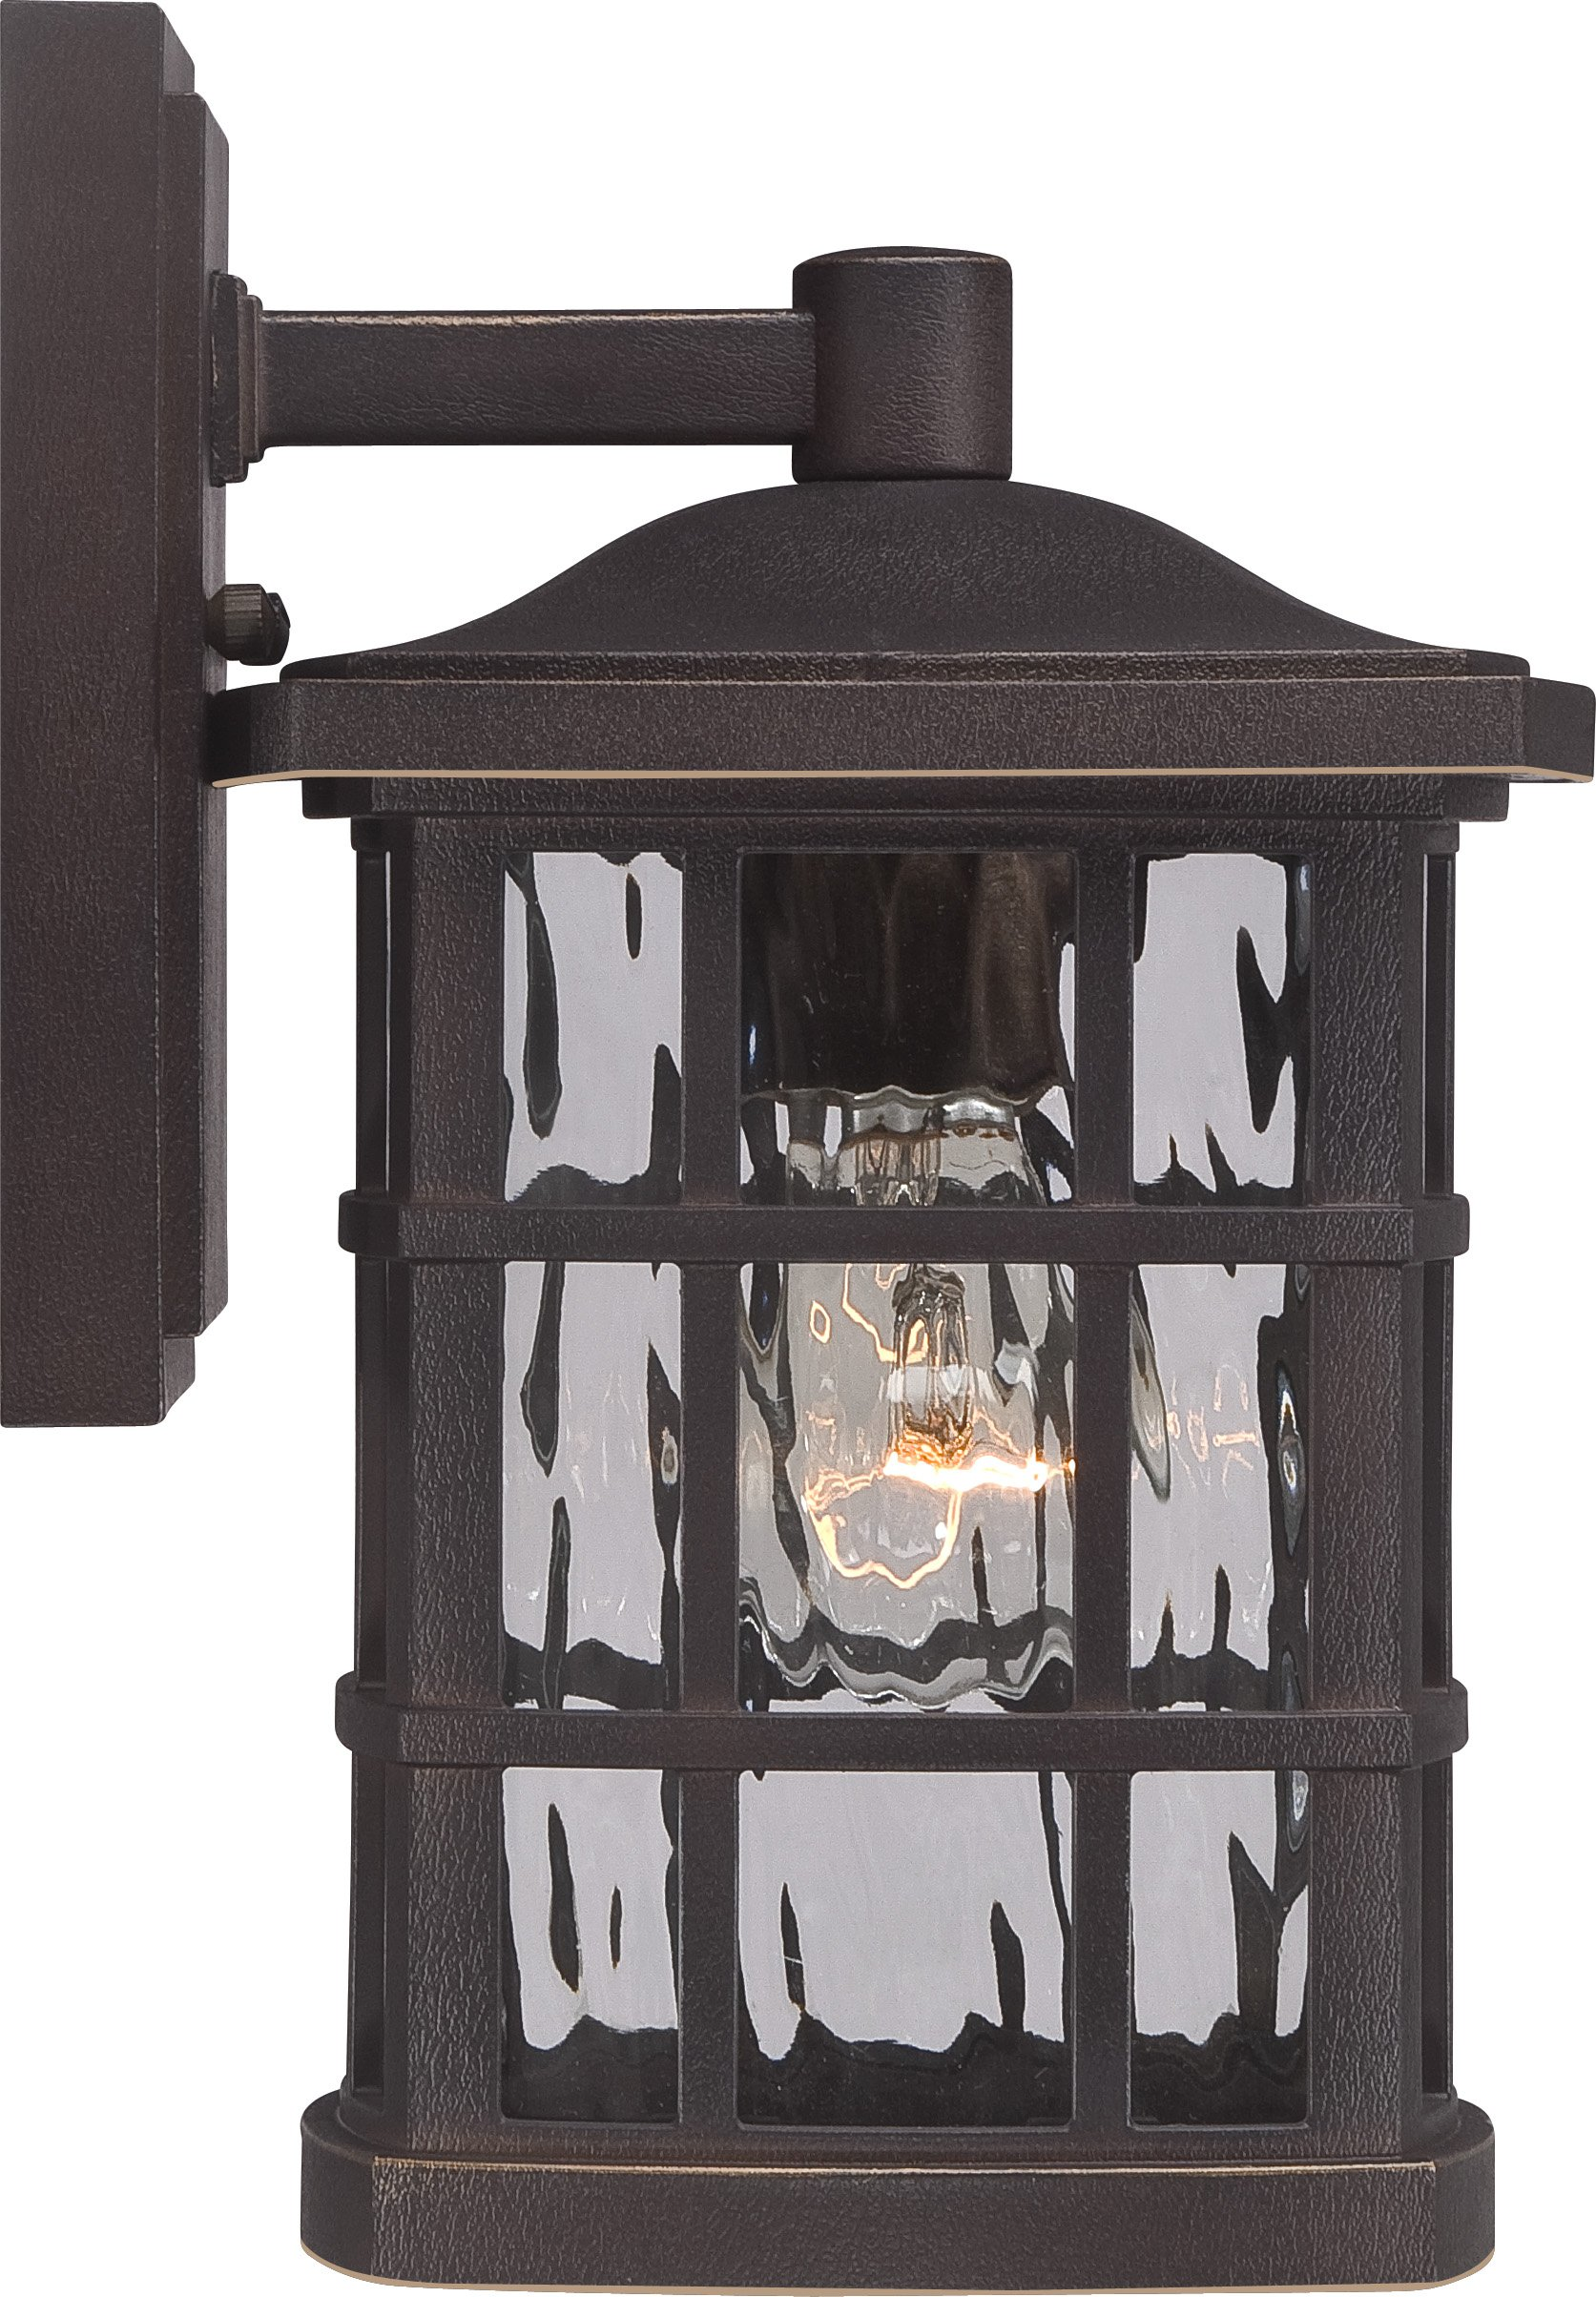 Luxury Craftsman Outdoor Wall Light, Small Size: 10.5'' H x 6.5'' W, with Tudor Style Elements, Highly-Detailed Design, Oil Rubbed Parisian Bronze Finish and Water Glass, UQL1231 by Urban Ambiance